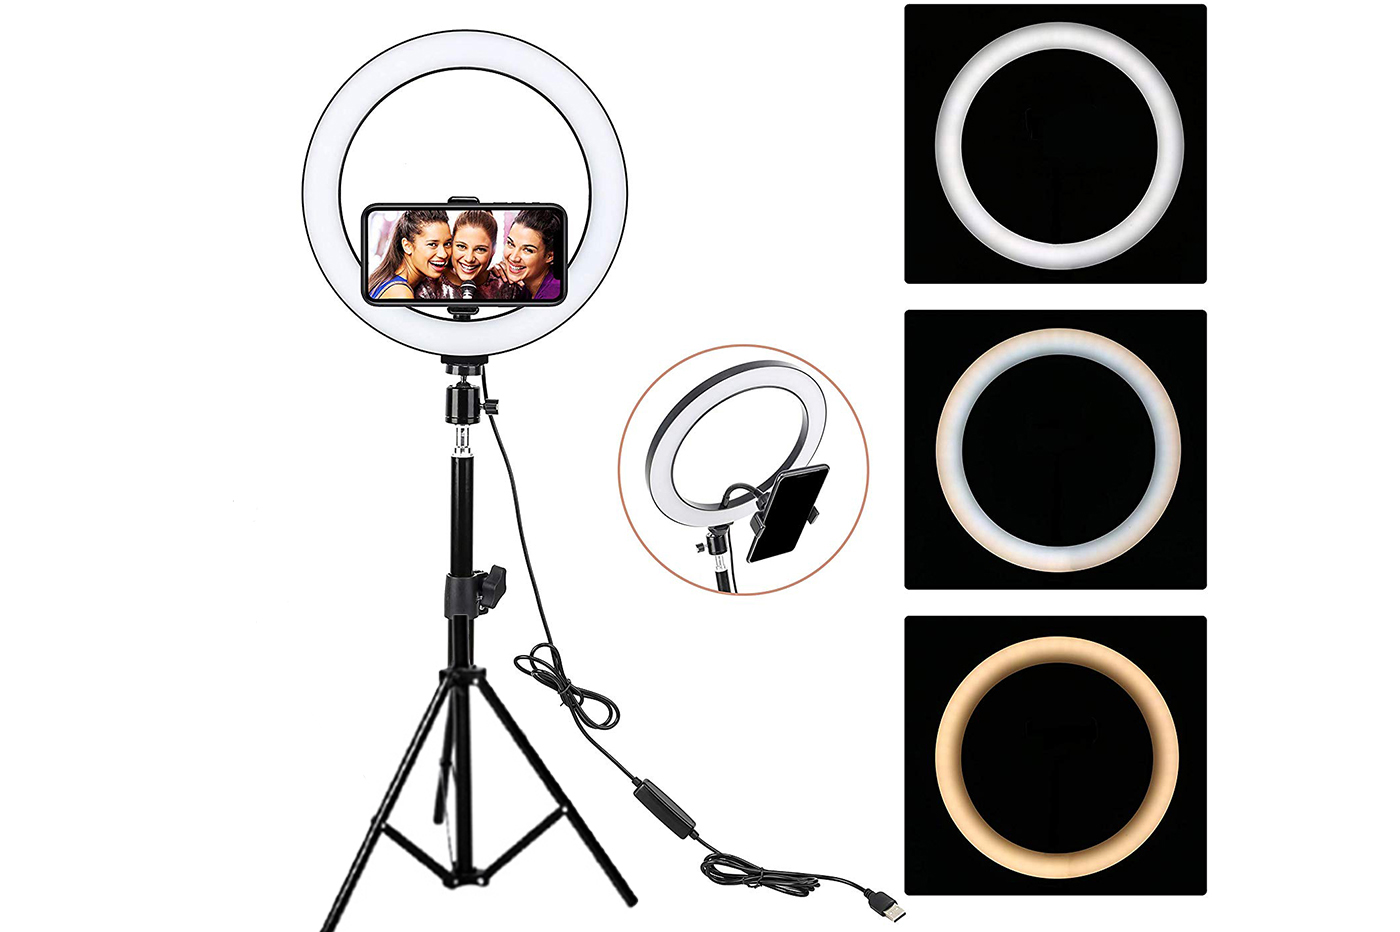 Anello luminoso con treppiede supporto cellulare selfie video trucco led 30cm